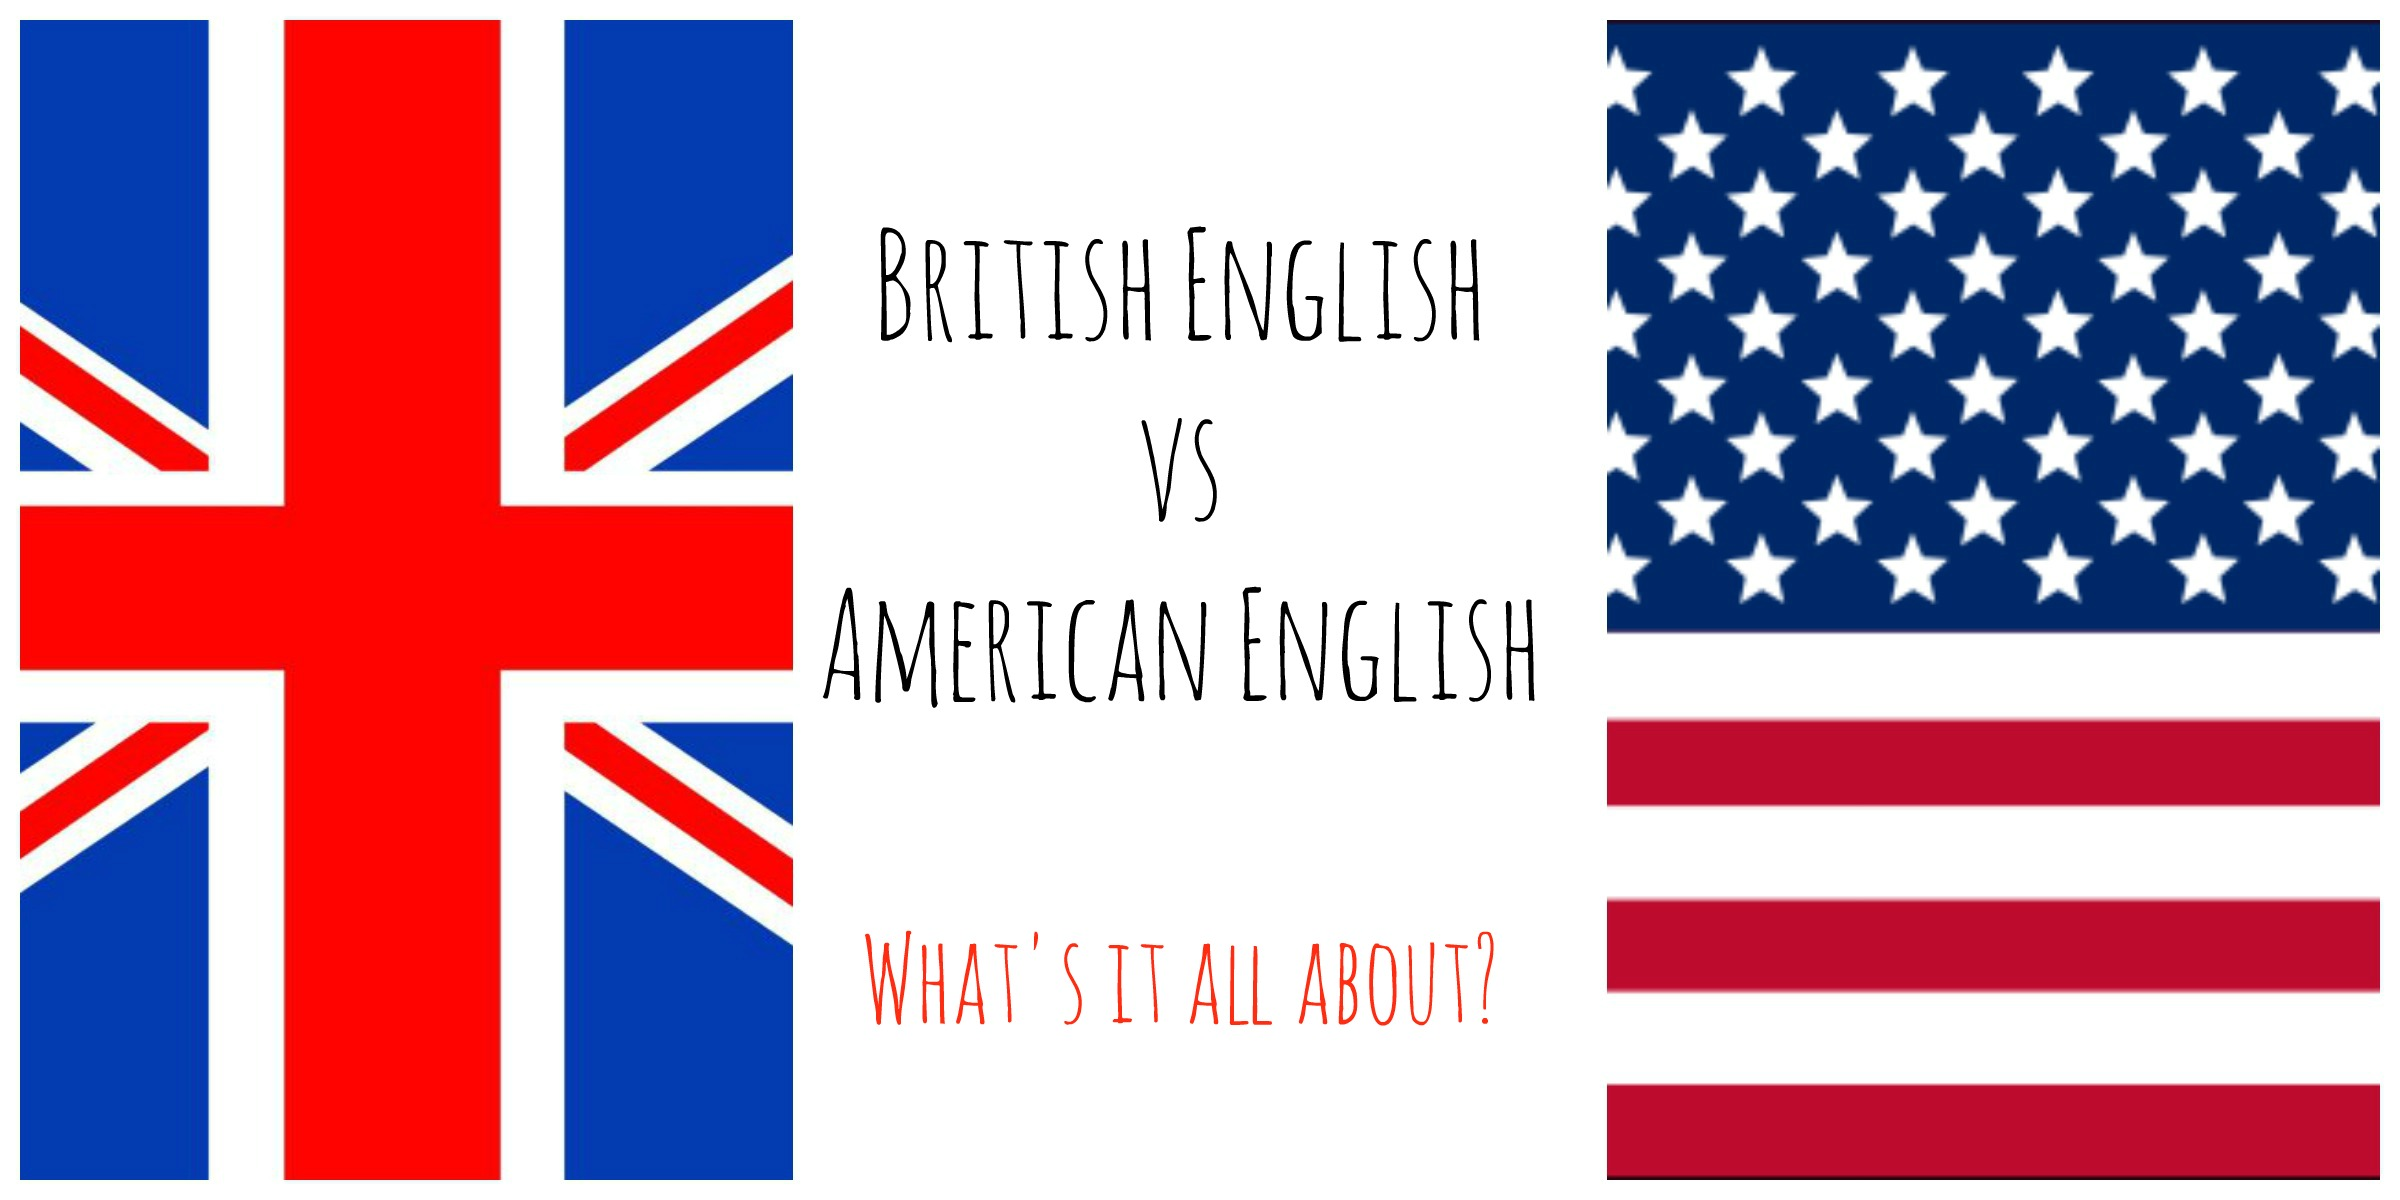 english language and british english Comments such as american english is inferior to british english, or american english is better than british english have no solid basis other than the speaker's opinion the truth is that no language or regional variety of language is inherently better or worse than another.